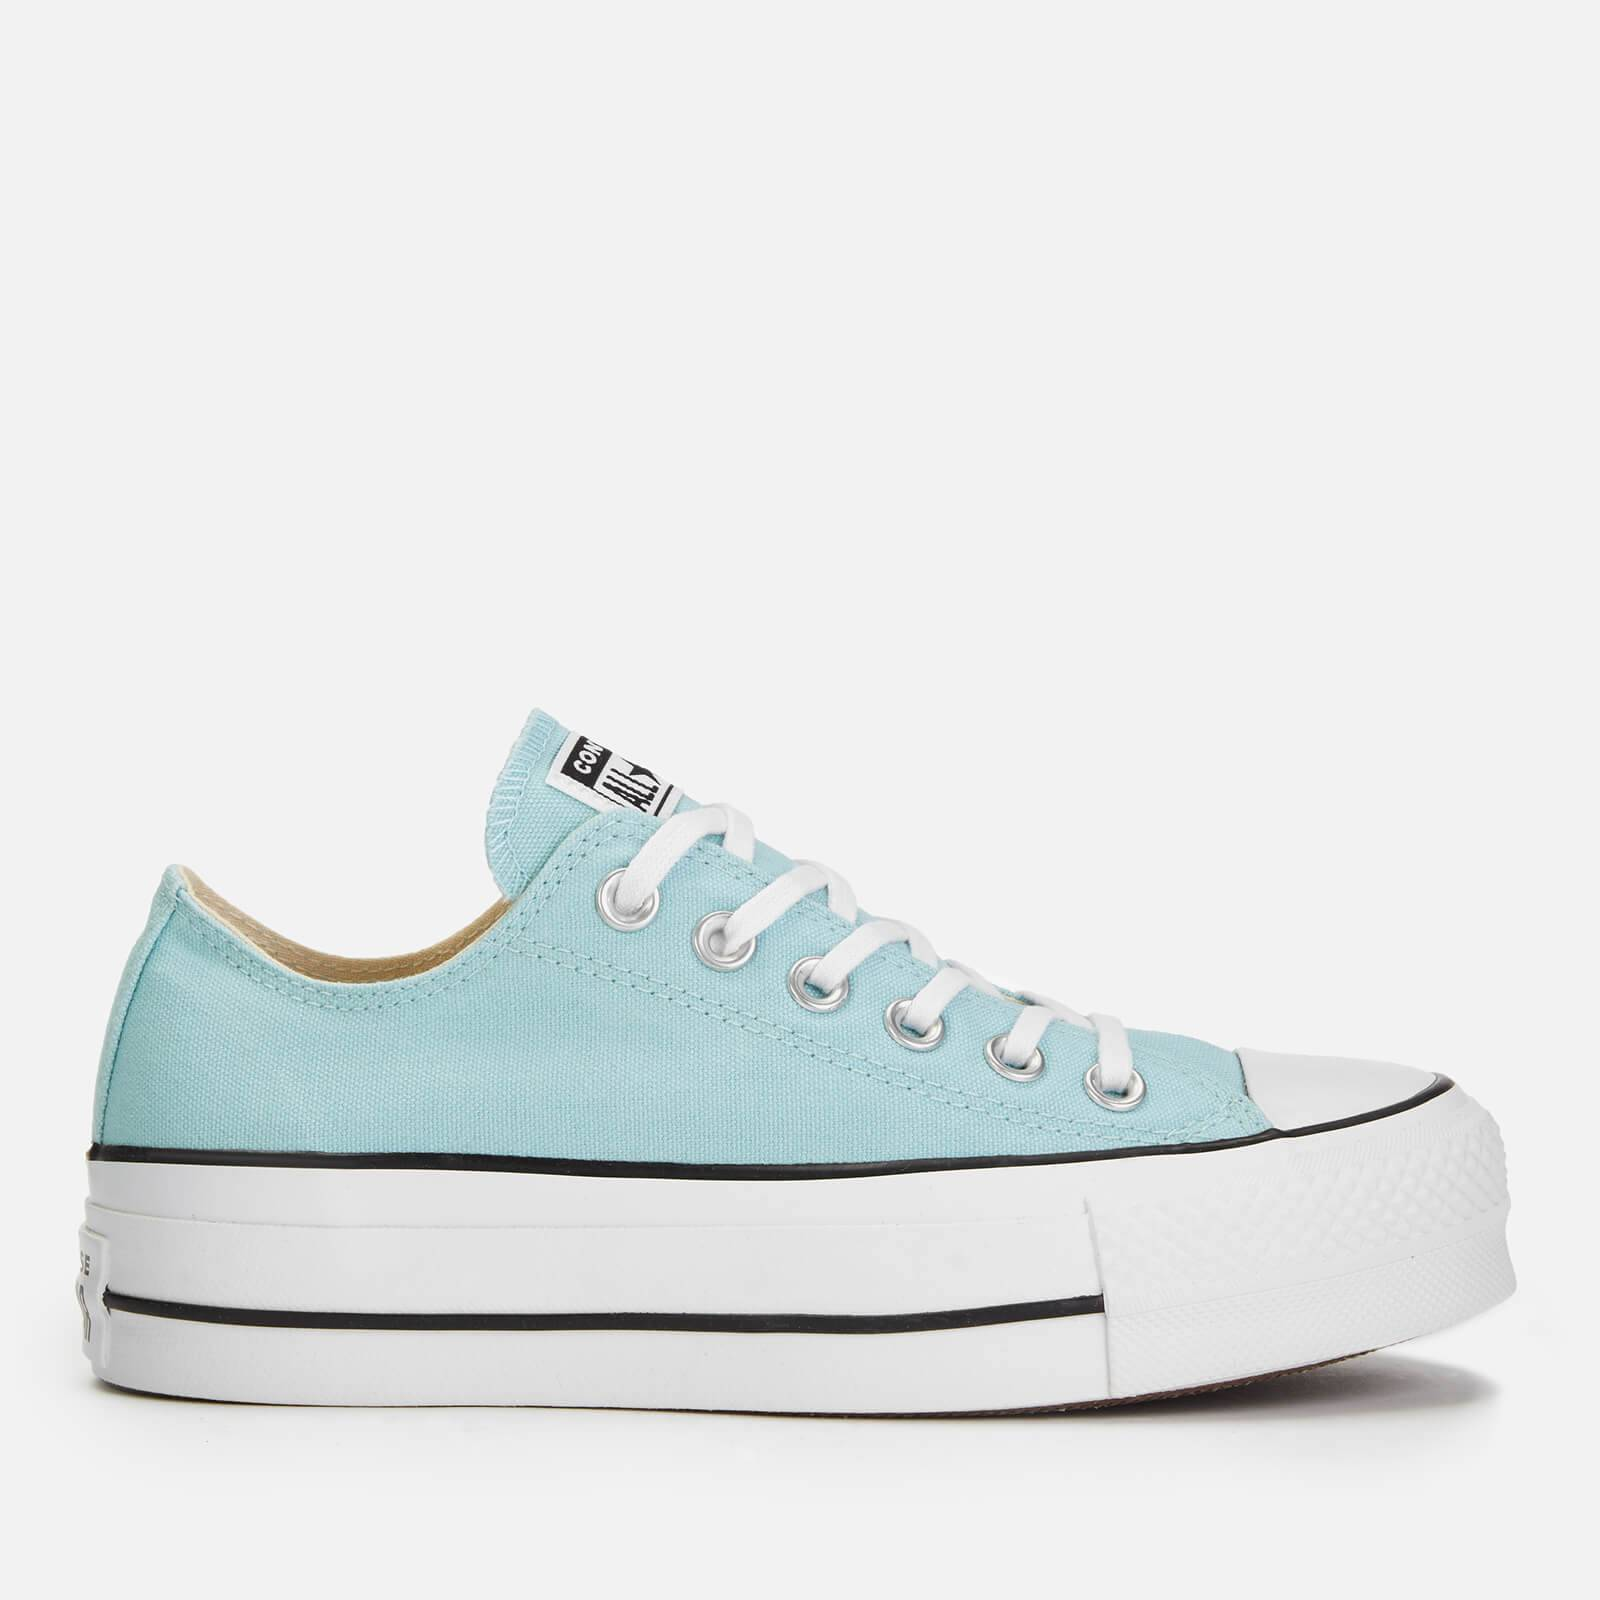 Converse Women's Chuck Taylor All Star Lift Ox Trainers - Ocean Bliss/White/Black - UK 6 - Blue